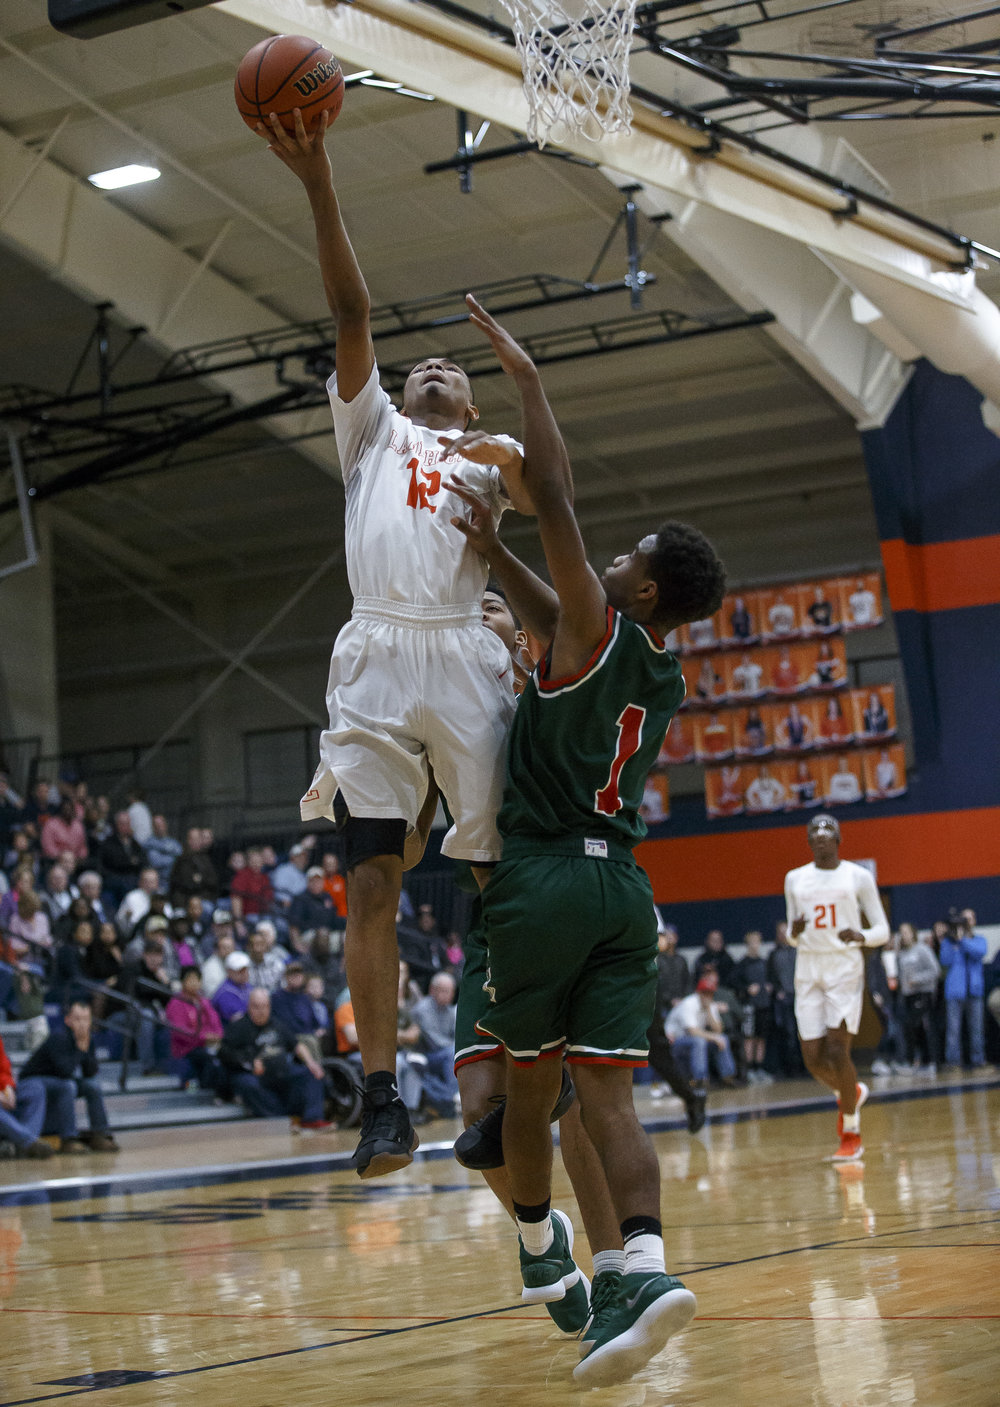 Lanphier's Cardell McGee (12) goes up for a basket against Lincoln's Titus Cannon (1) in the second half of the Class 3A Rochester Regional title game at the Rochester Athletic Complex, Friday, March 2, 2018, in Rochester, Ill. [Justin L. Fowler/The State Journal-Register]